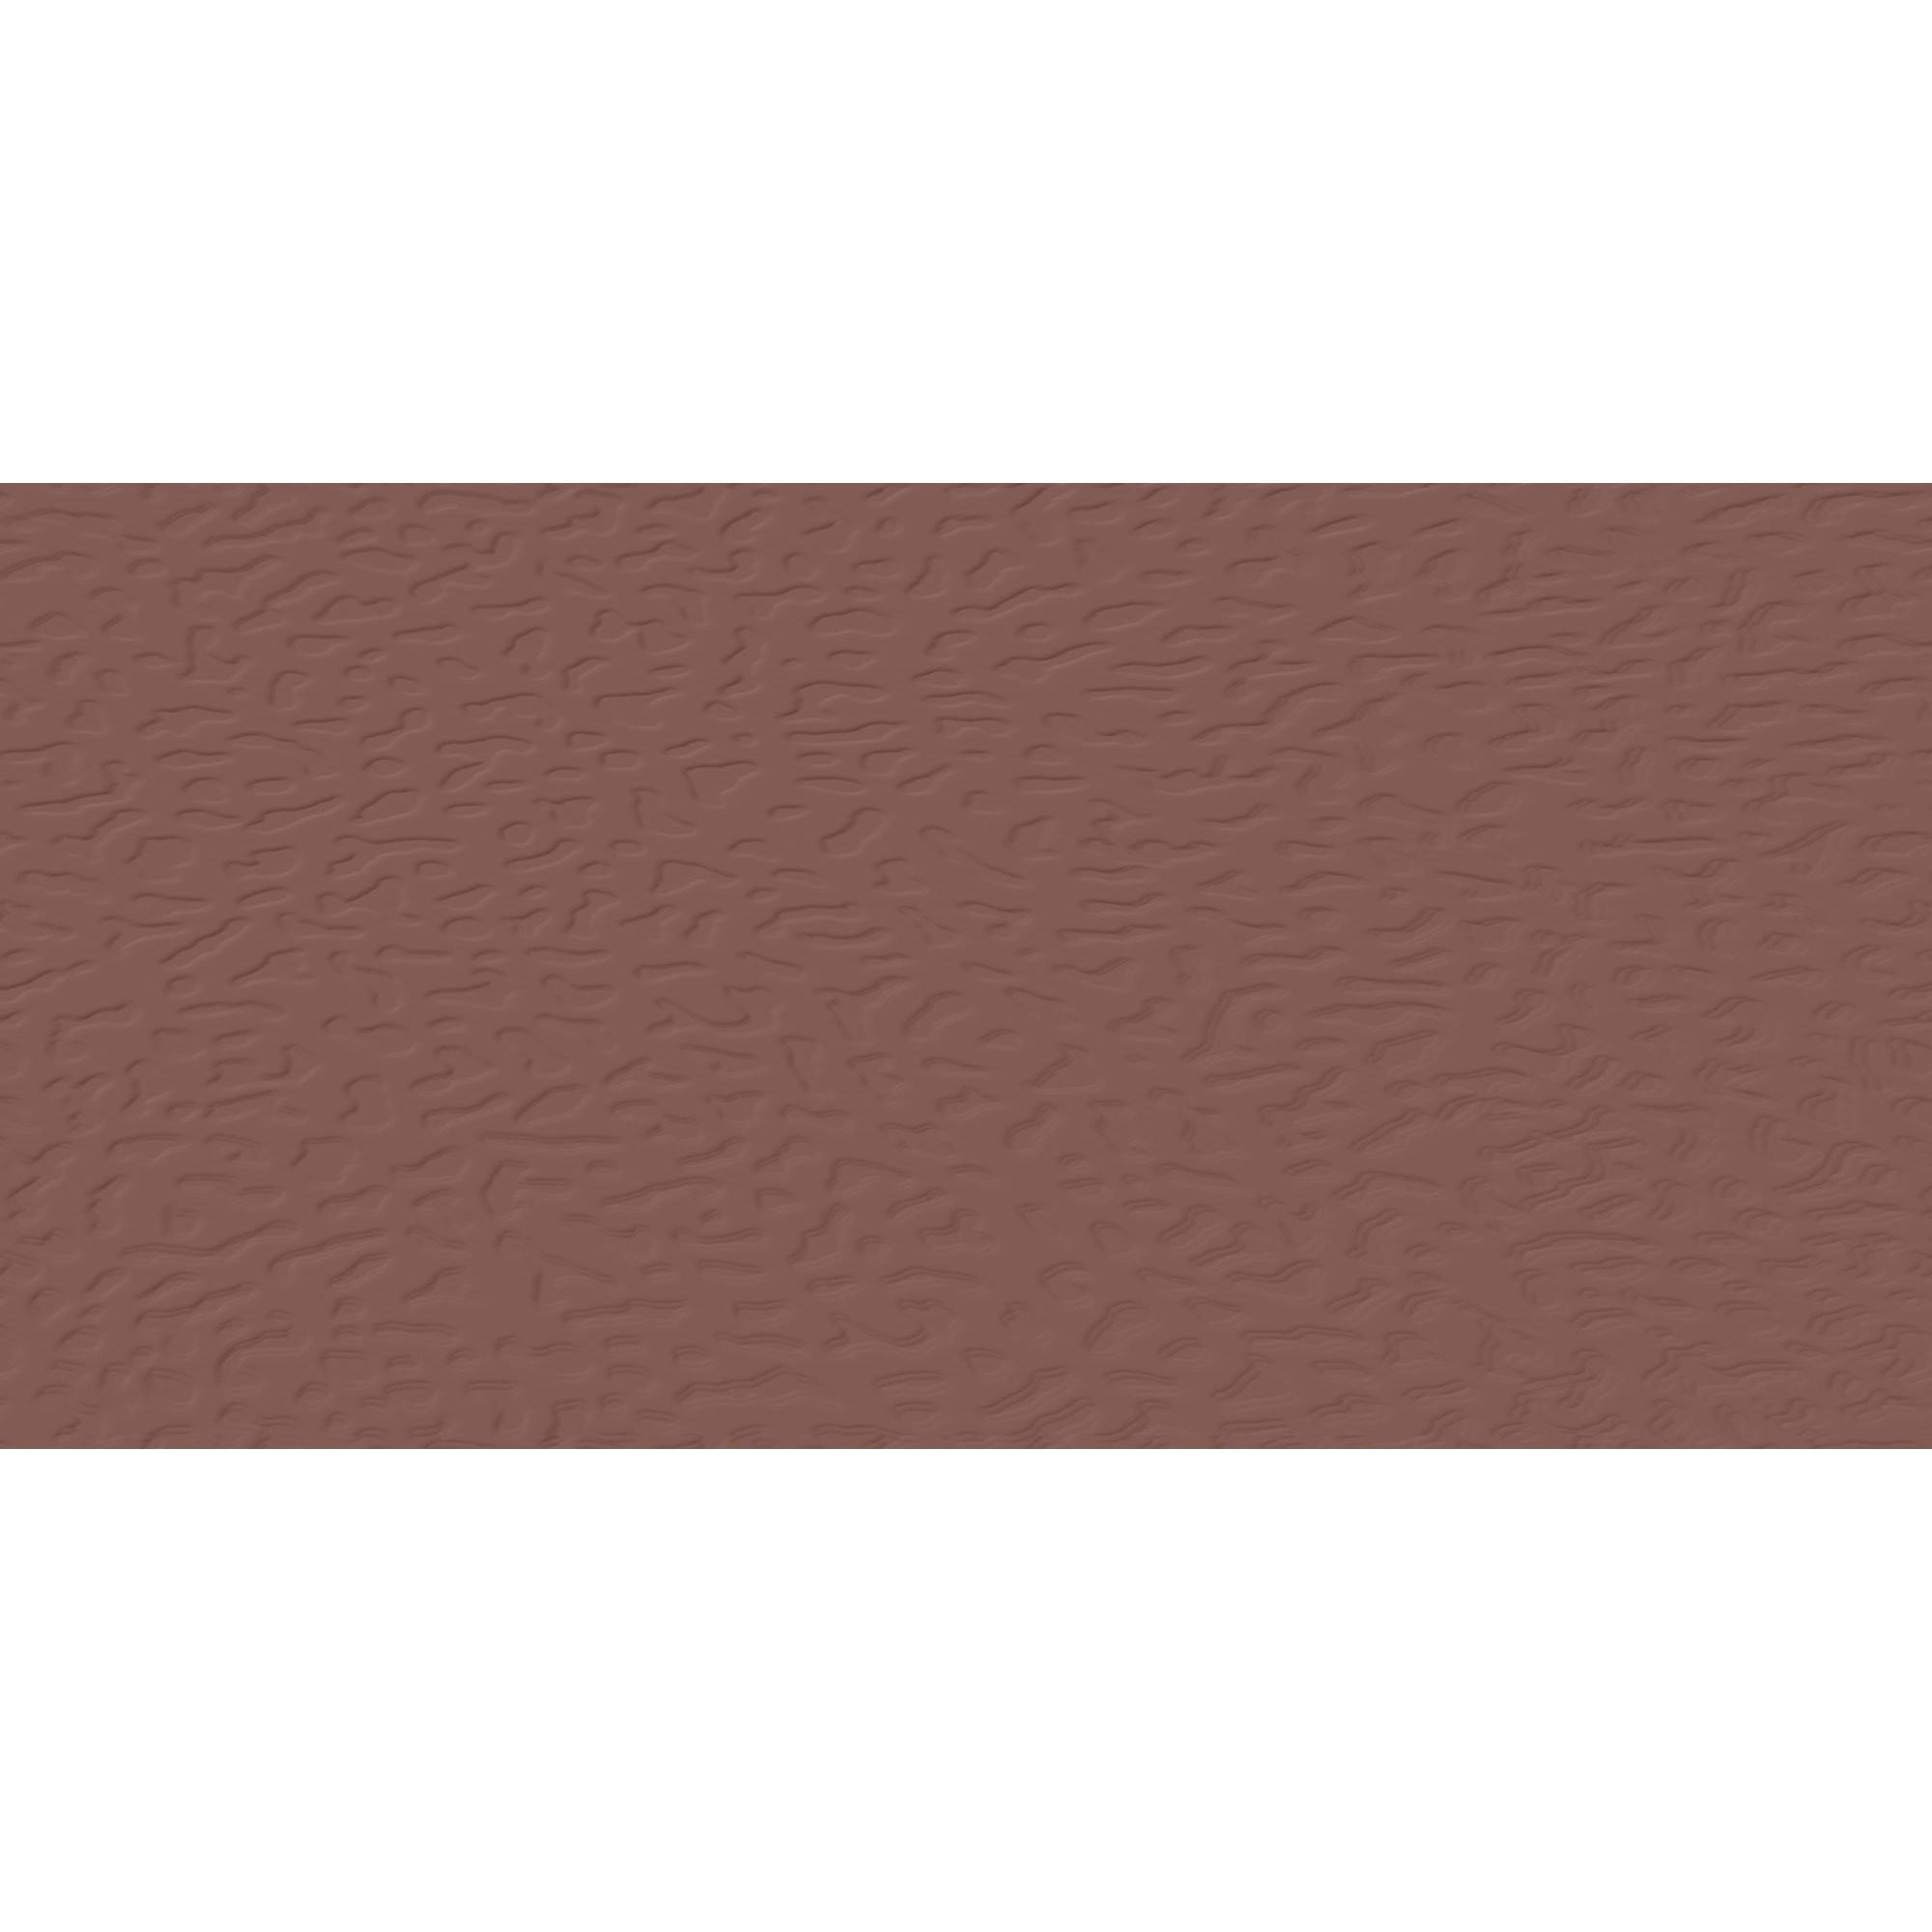 Roppe Designers Choice Hammered 6 x 12 Brick